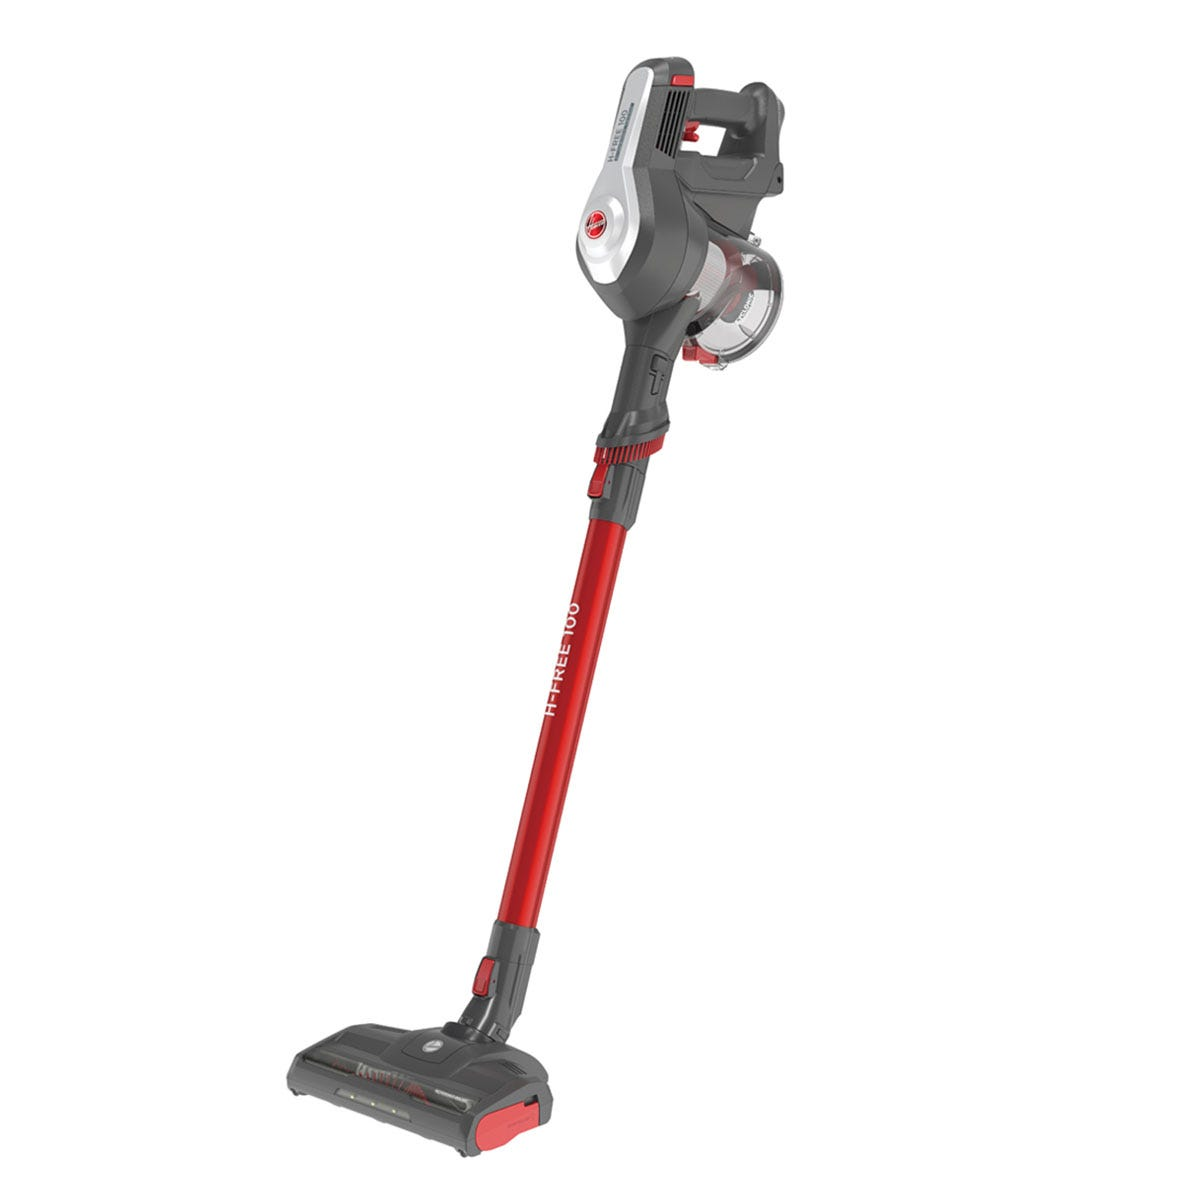 Hoover HF122RPT H-FREE 100 Pets Cordless Vacuum Cleaner - Grey & Red